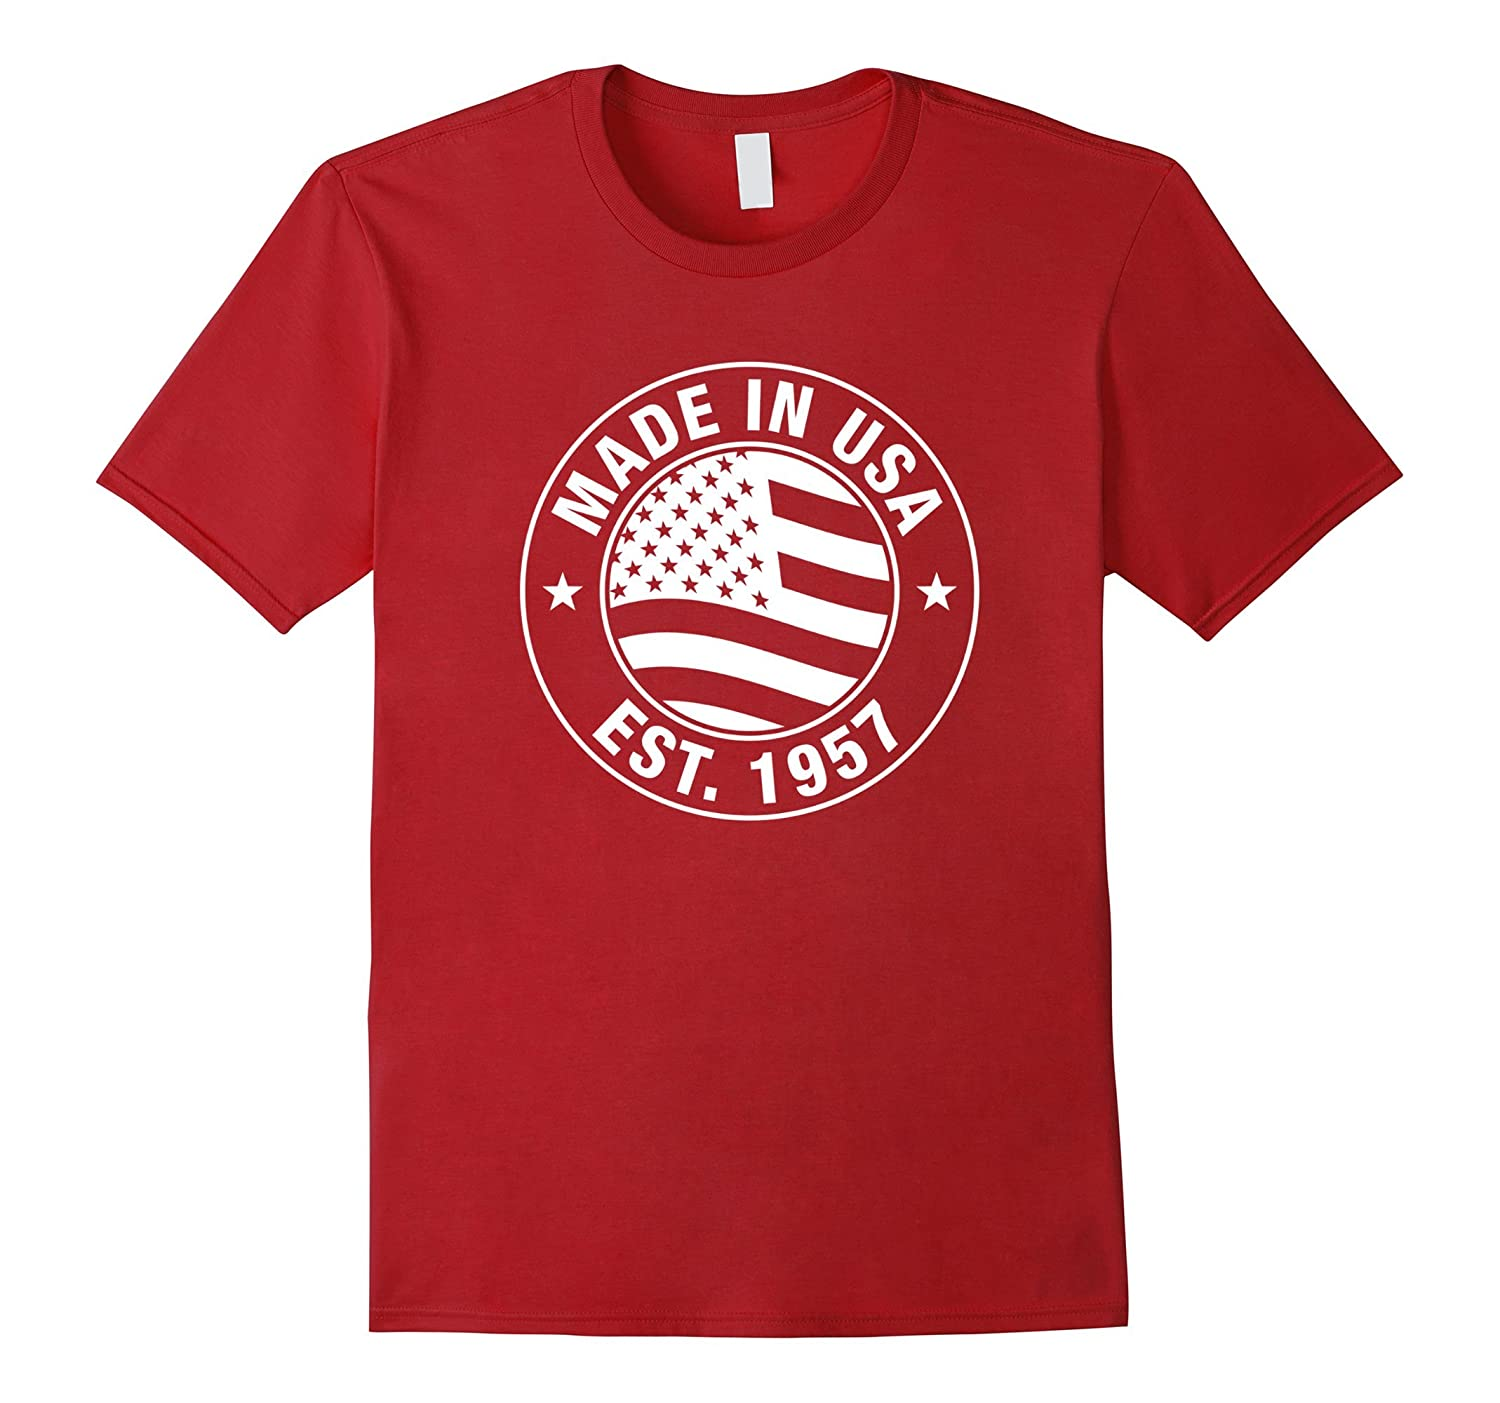 Made In USA EST 1957 60 Years Old 60th Birthday Gift Tee Art